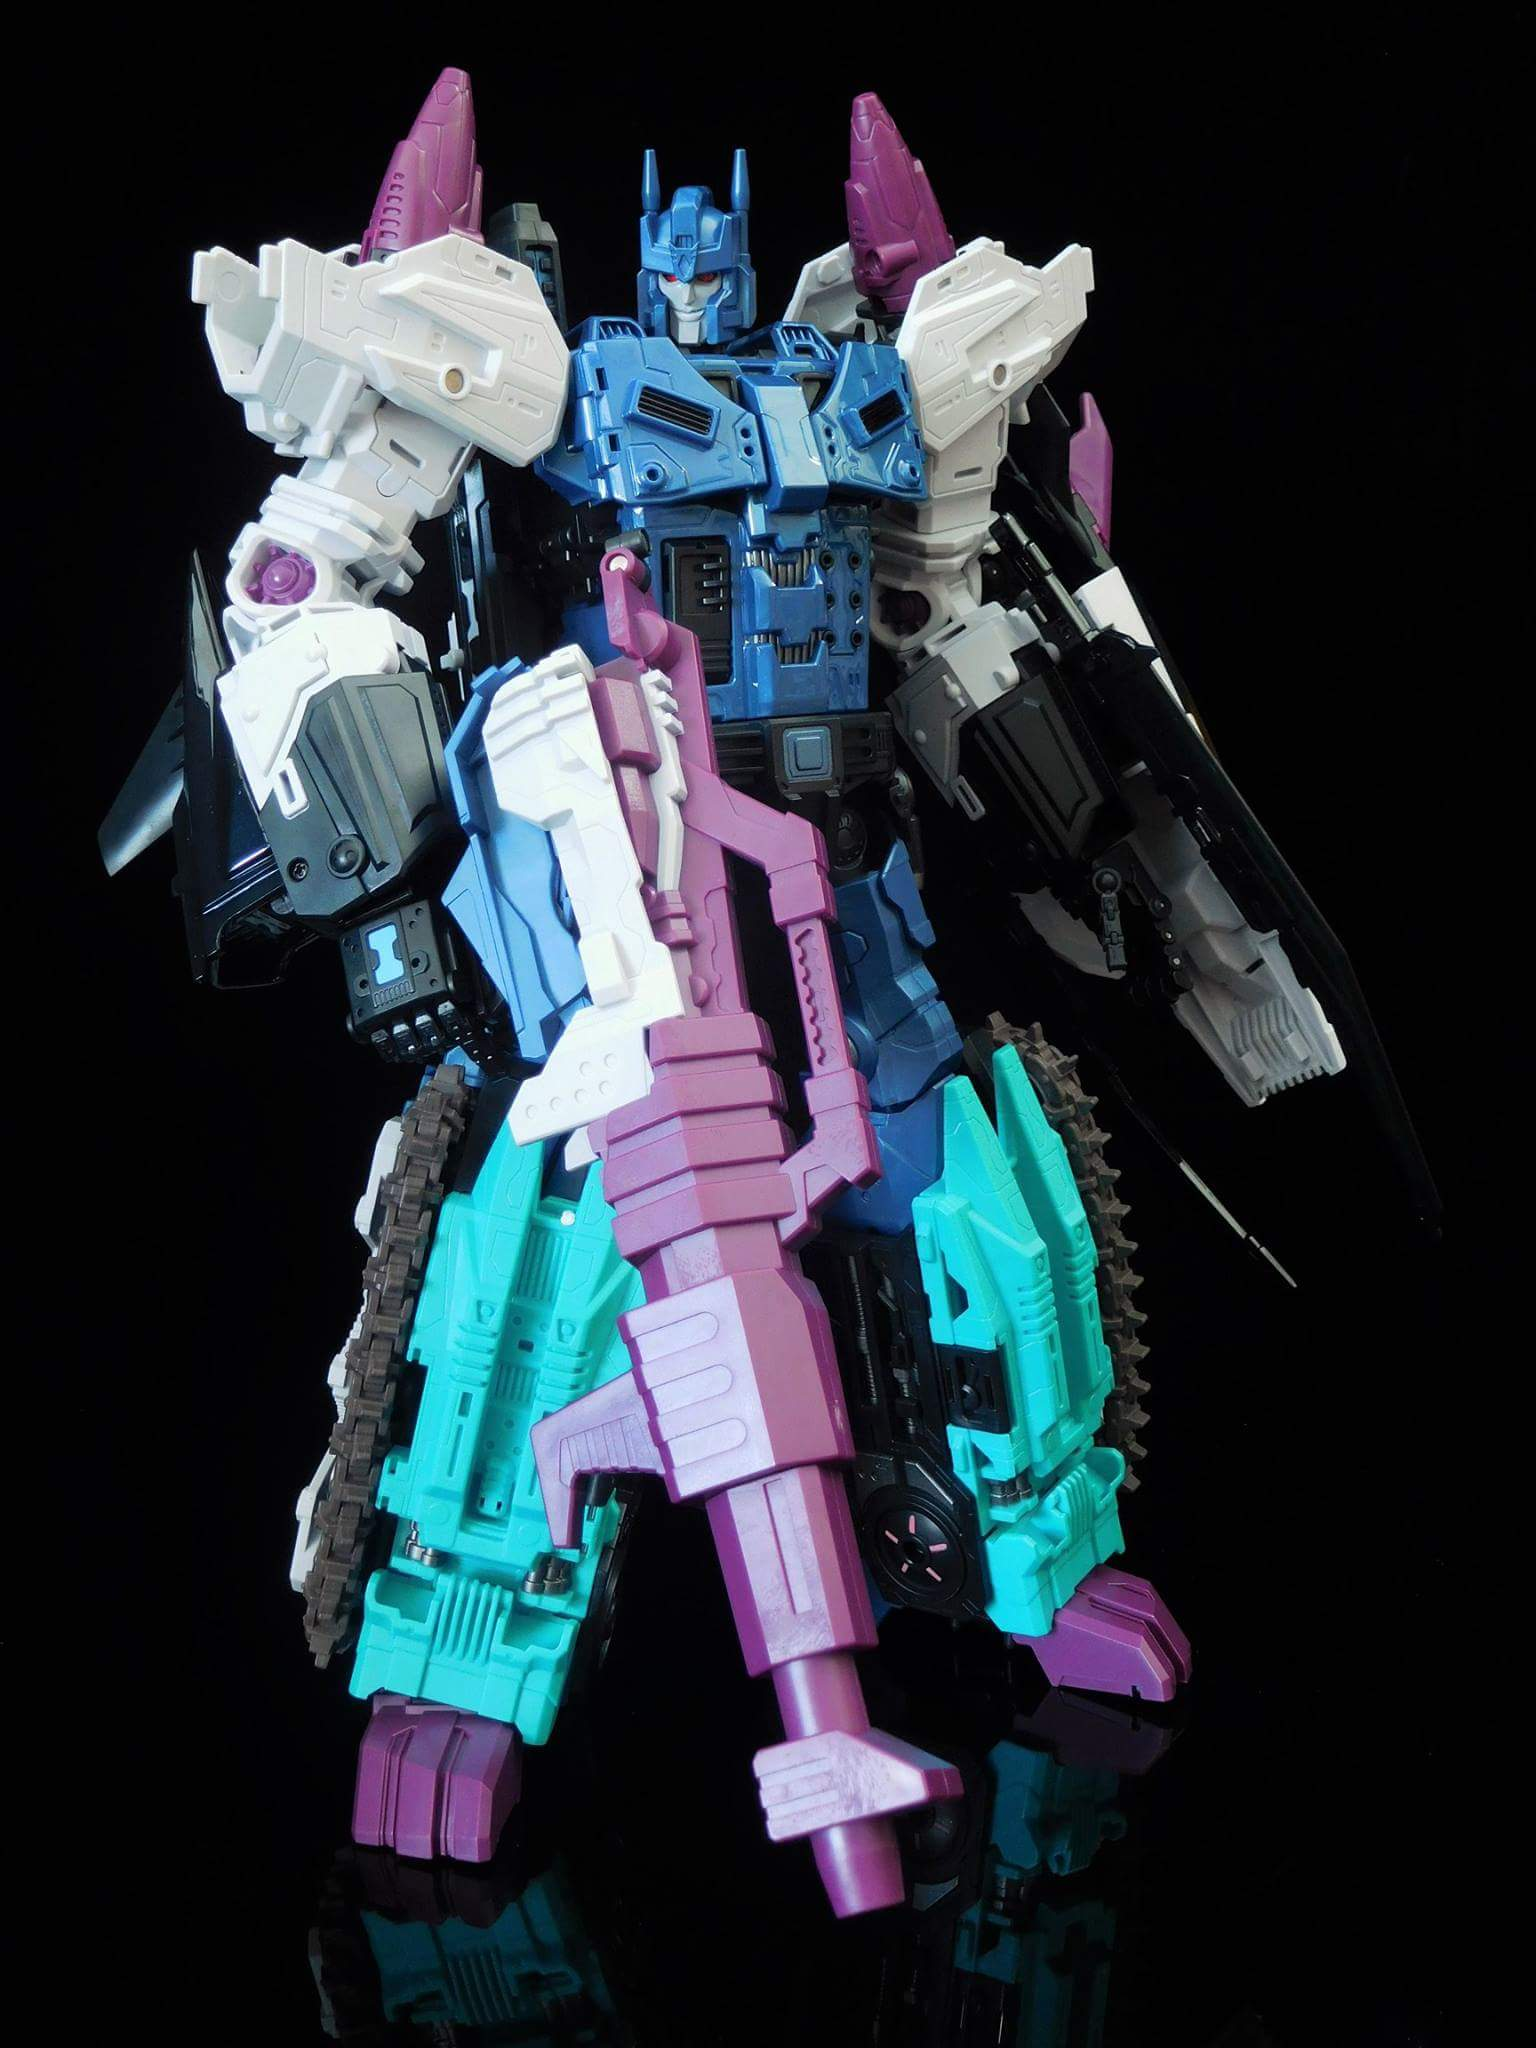 [Mastermind Creations] Produit Tiers - R-17 Carnifex - aka Overlord (TF Masterforce) - Page 3 UHGGcVcK